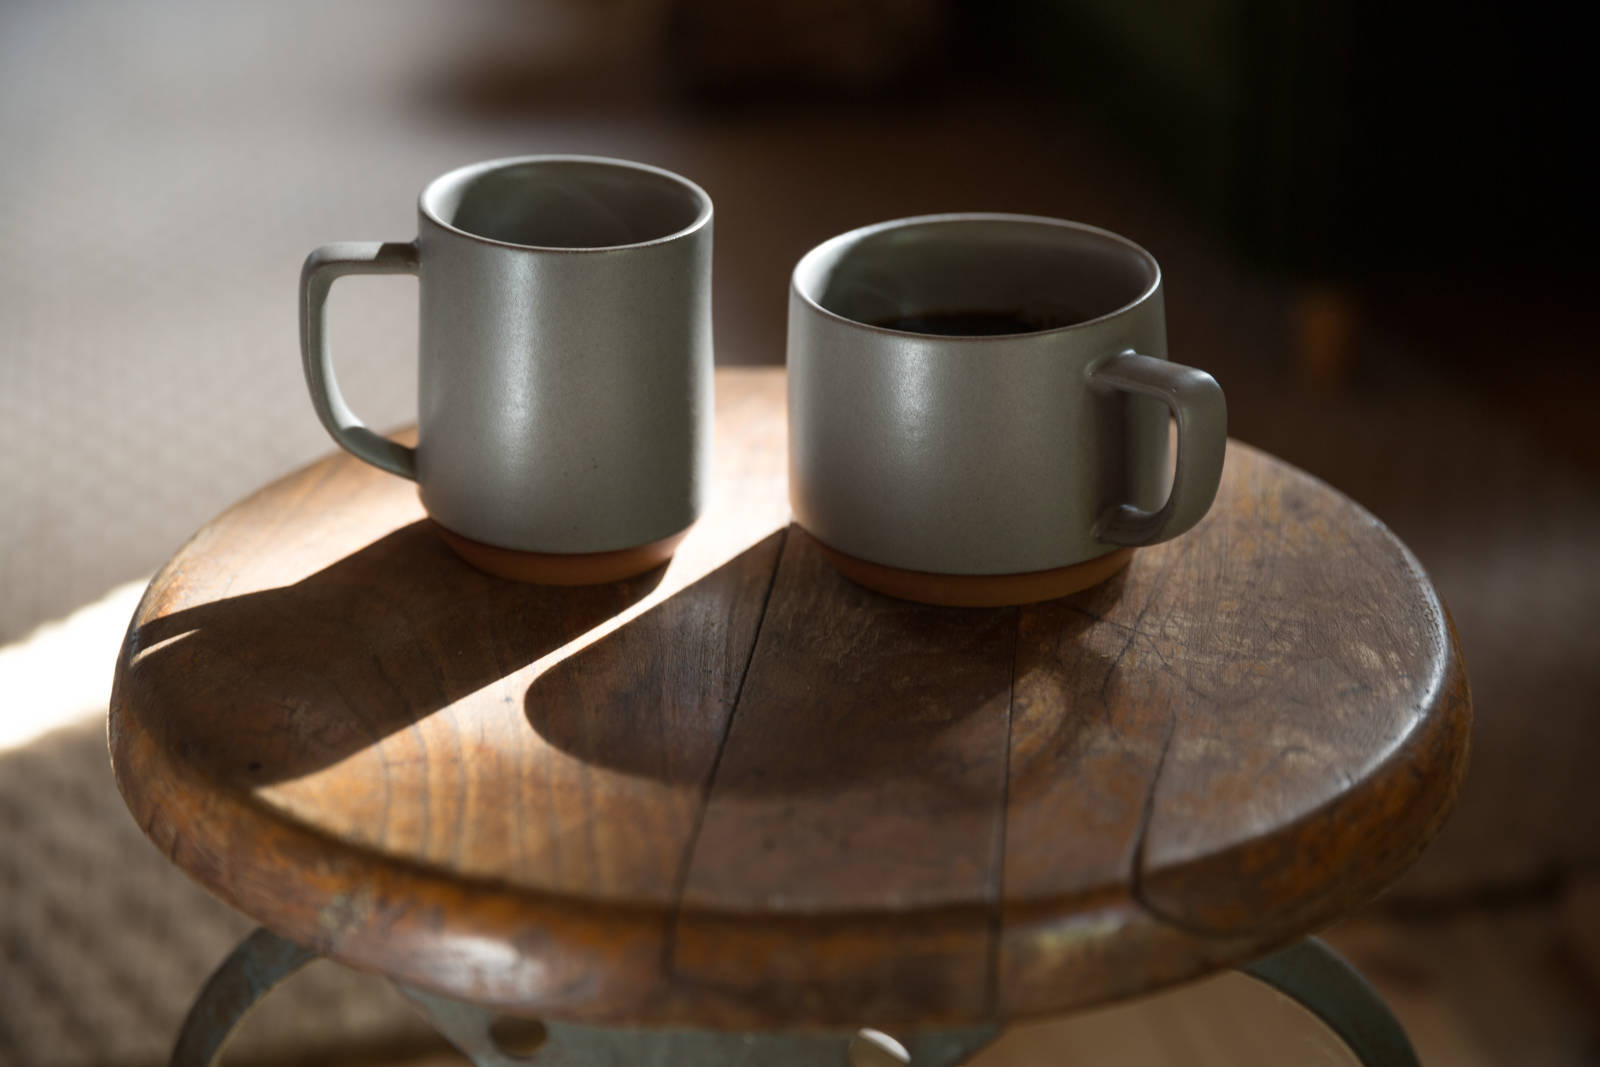 Fullsize Of Speciality Coffee Mugs